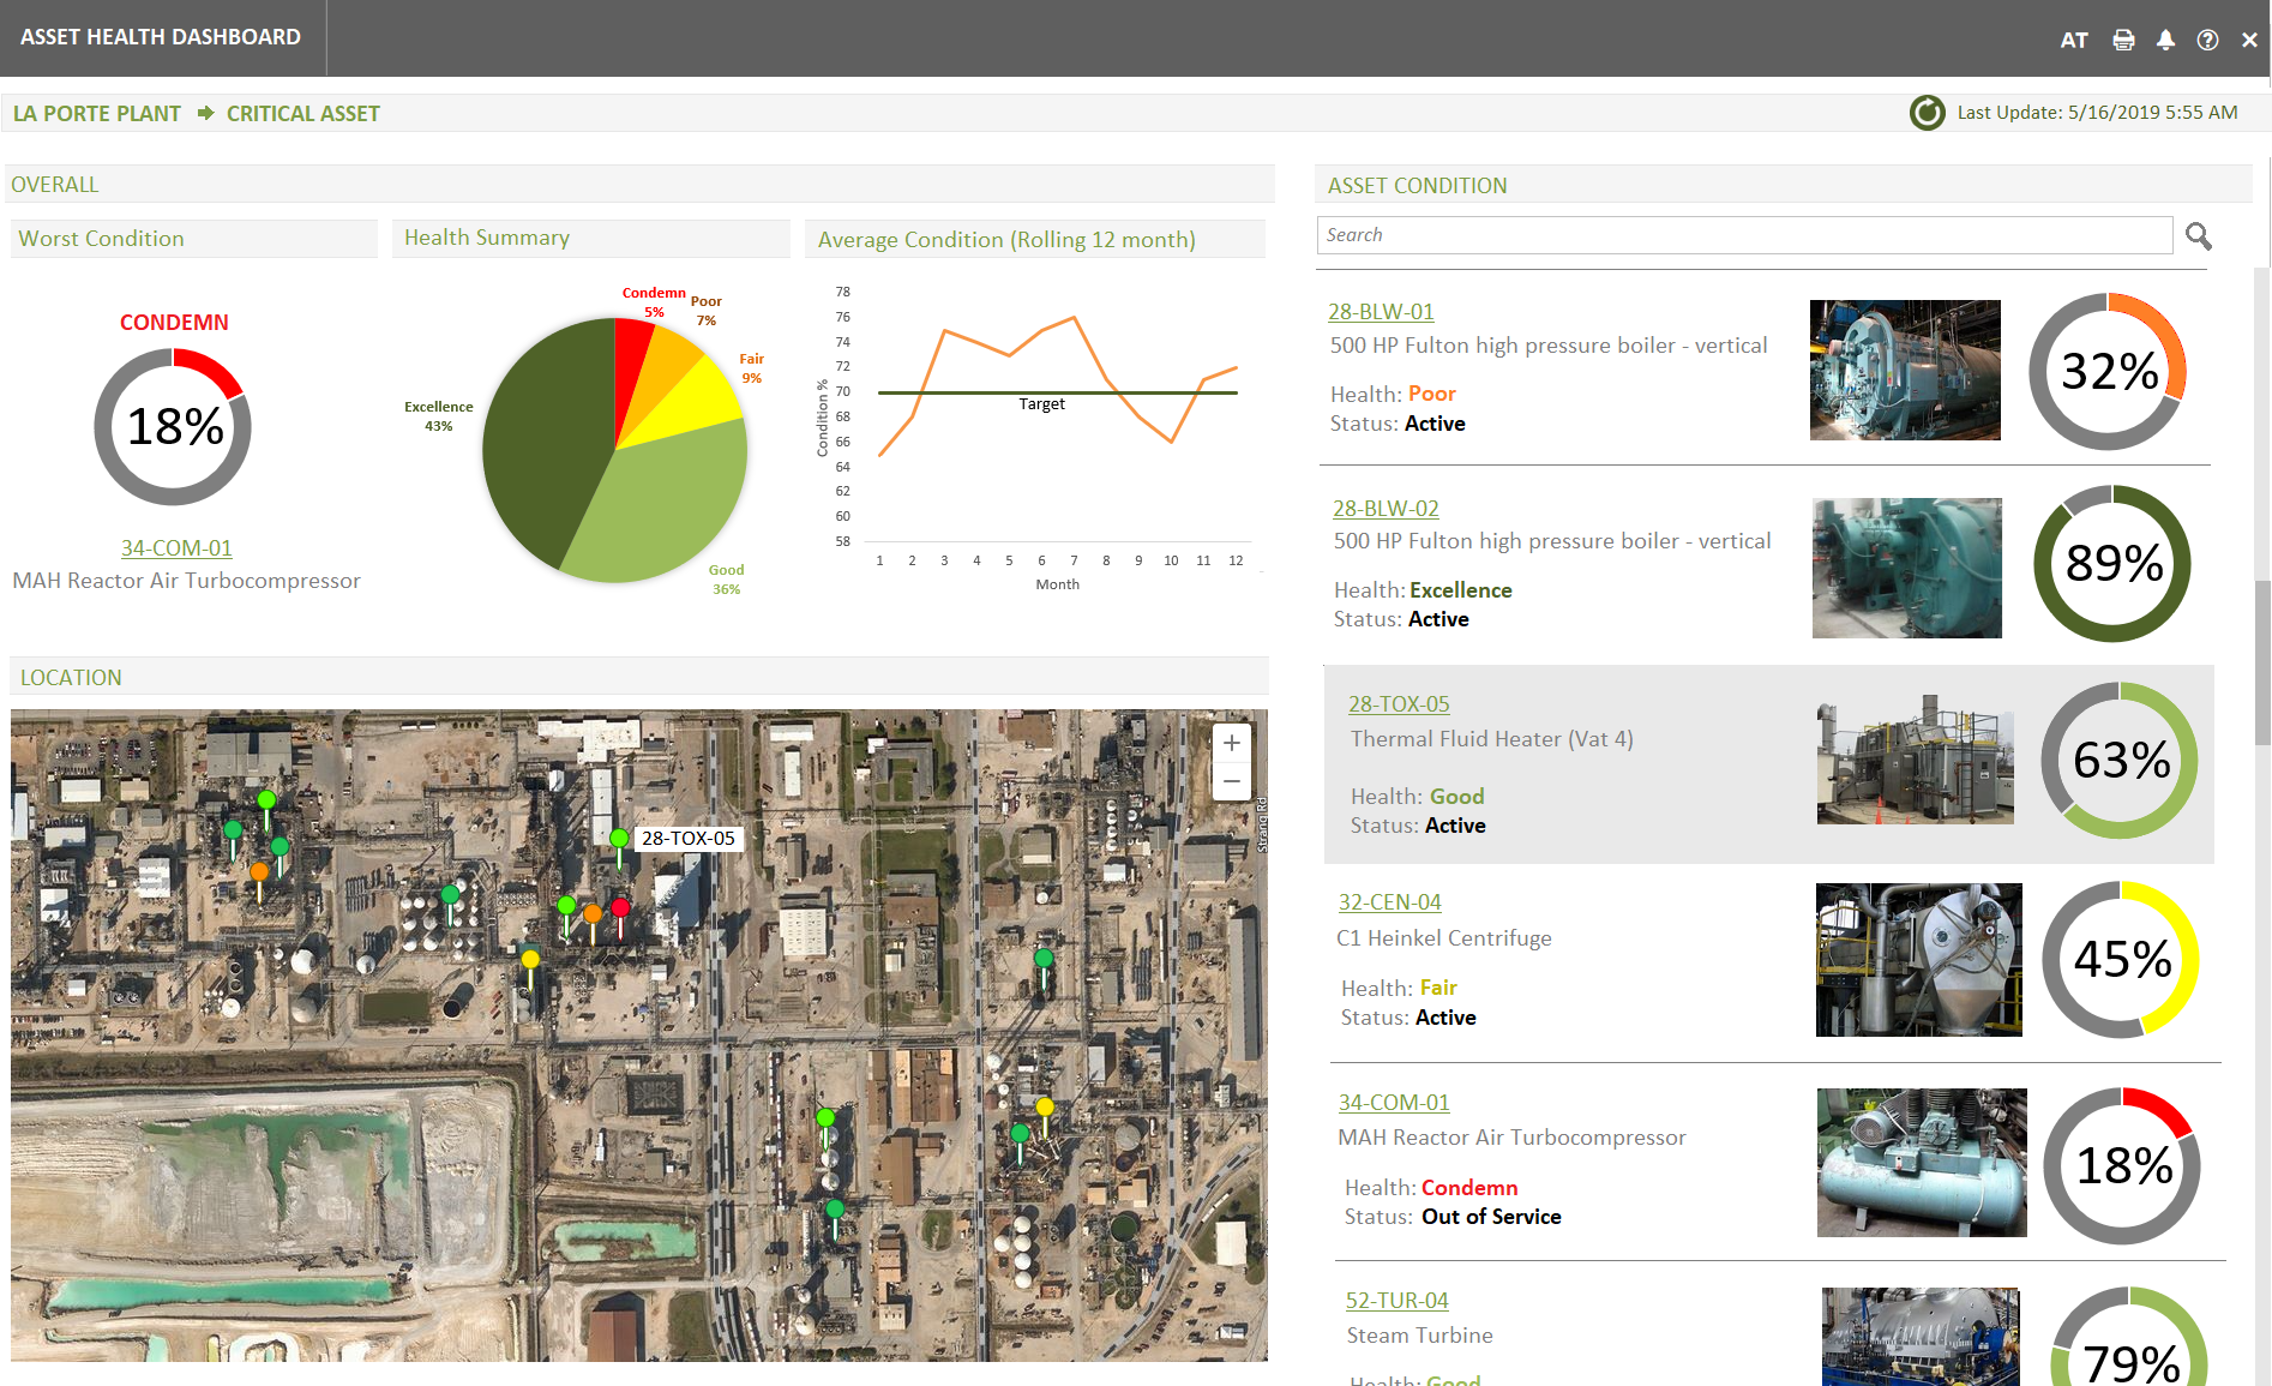 Screen shot of an Asset Health Dashboard that shows Asset Condition, Location, and Overall Summary